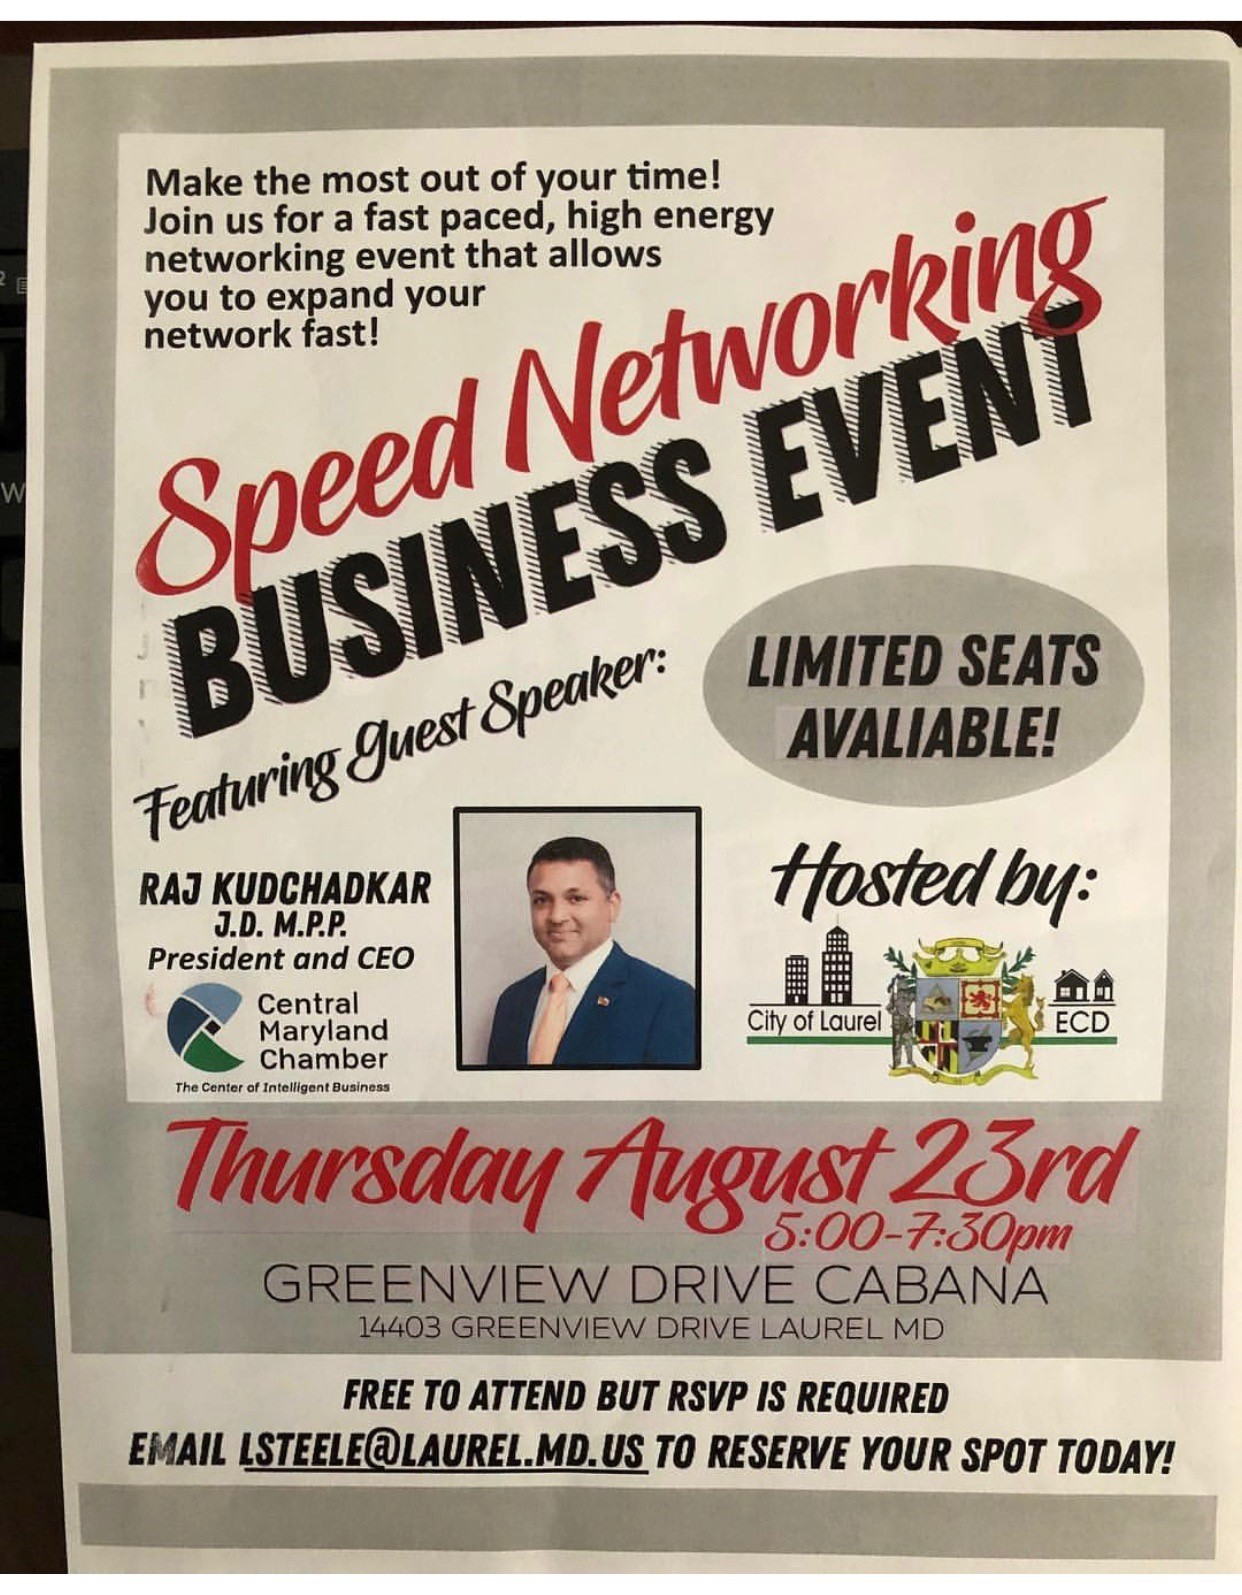 Ecd Speed Networking Event City Of Laurel Maryland